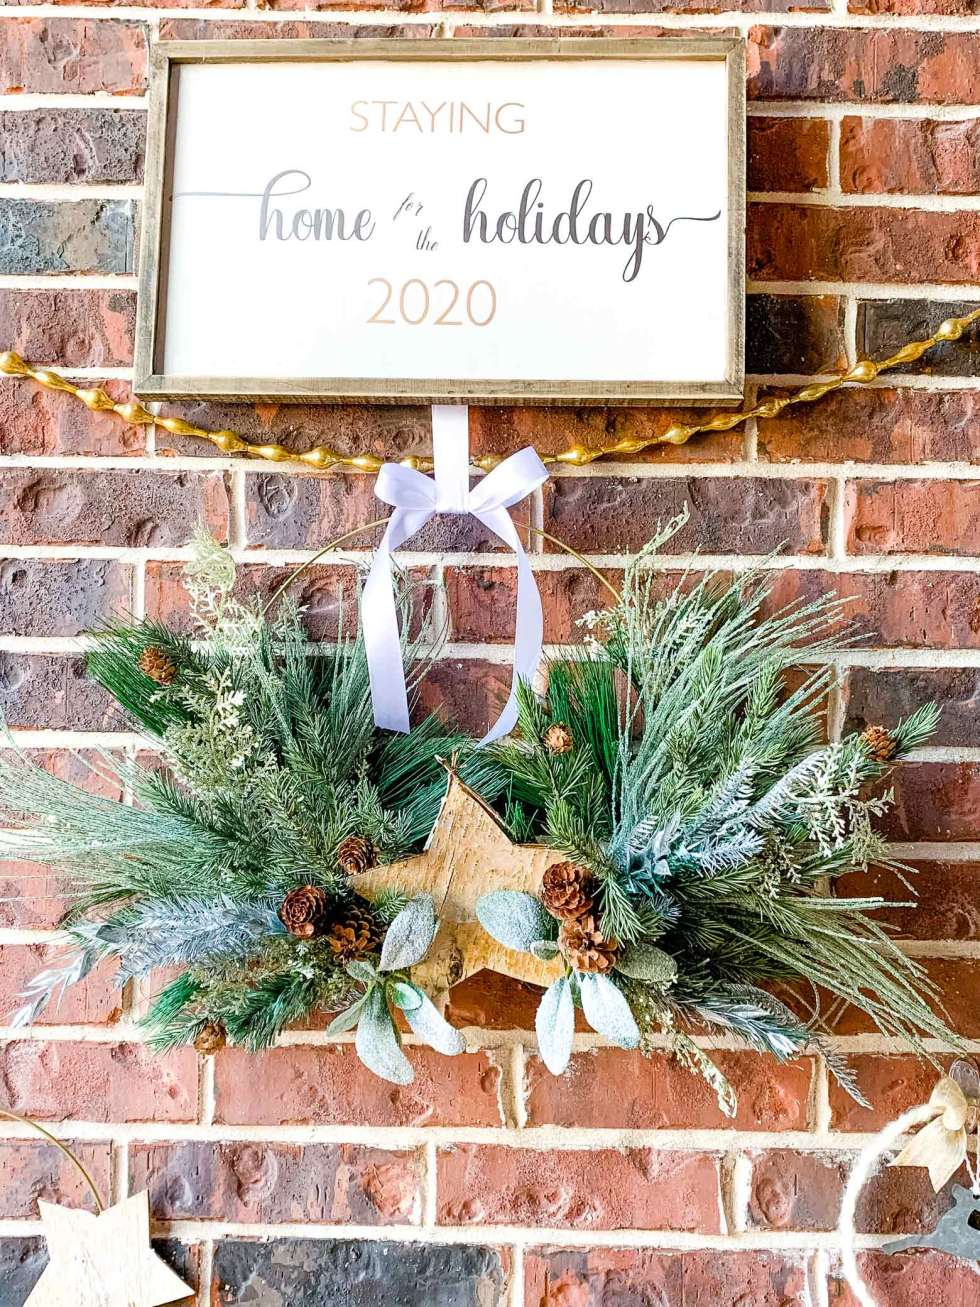 wooden Christmas sign above gold garland and a wreath with greenery